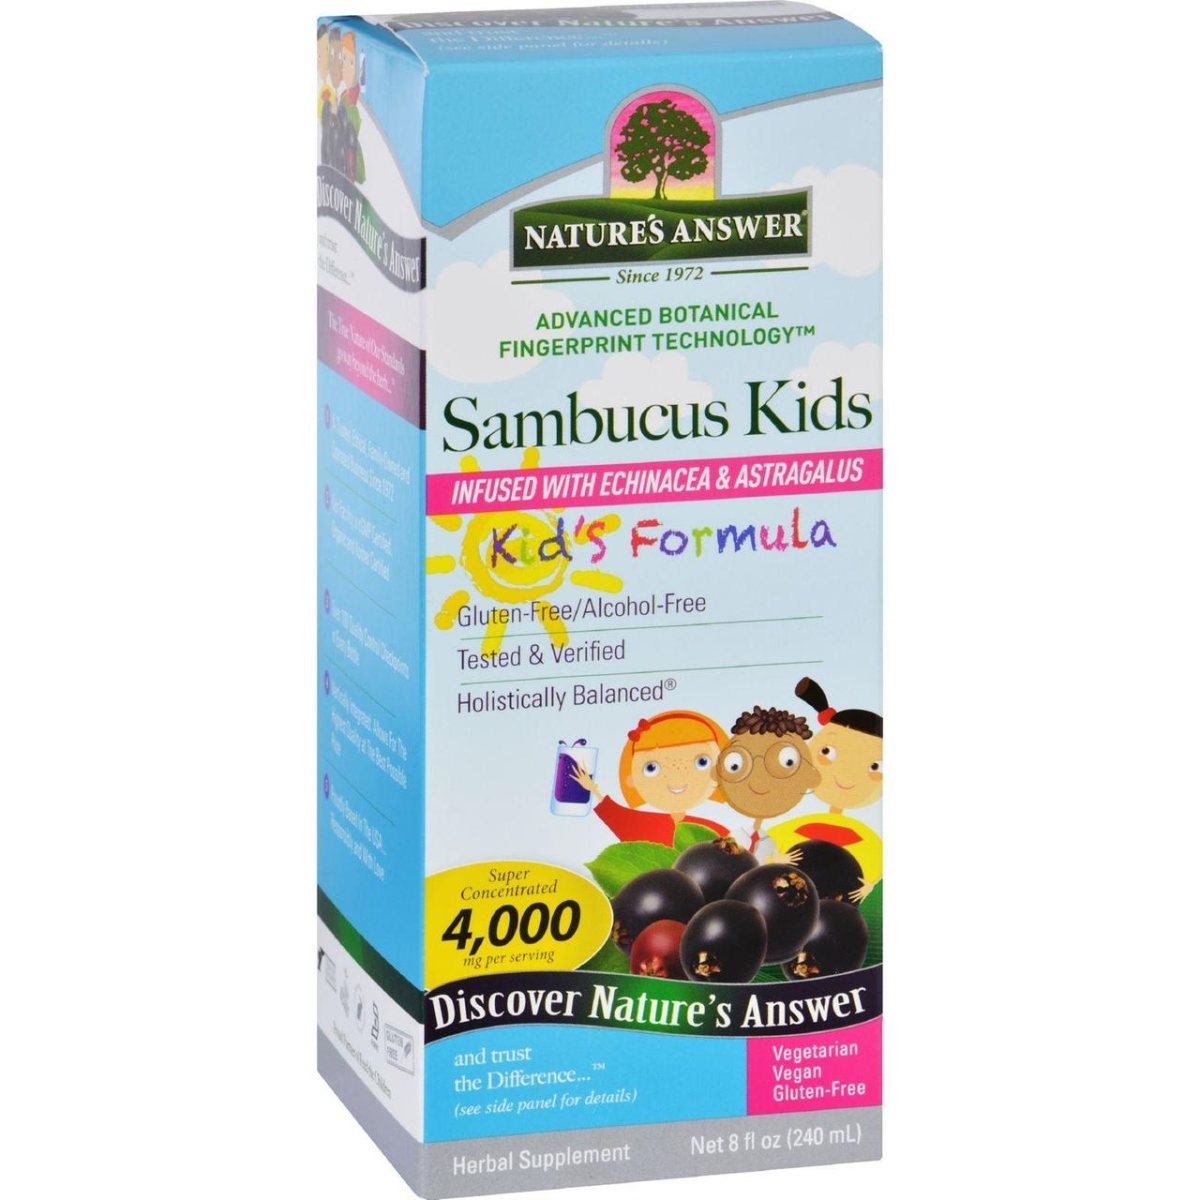 Natures Answer HG1718758 8 oz Sambucus Kids Formula - Original Flavor